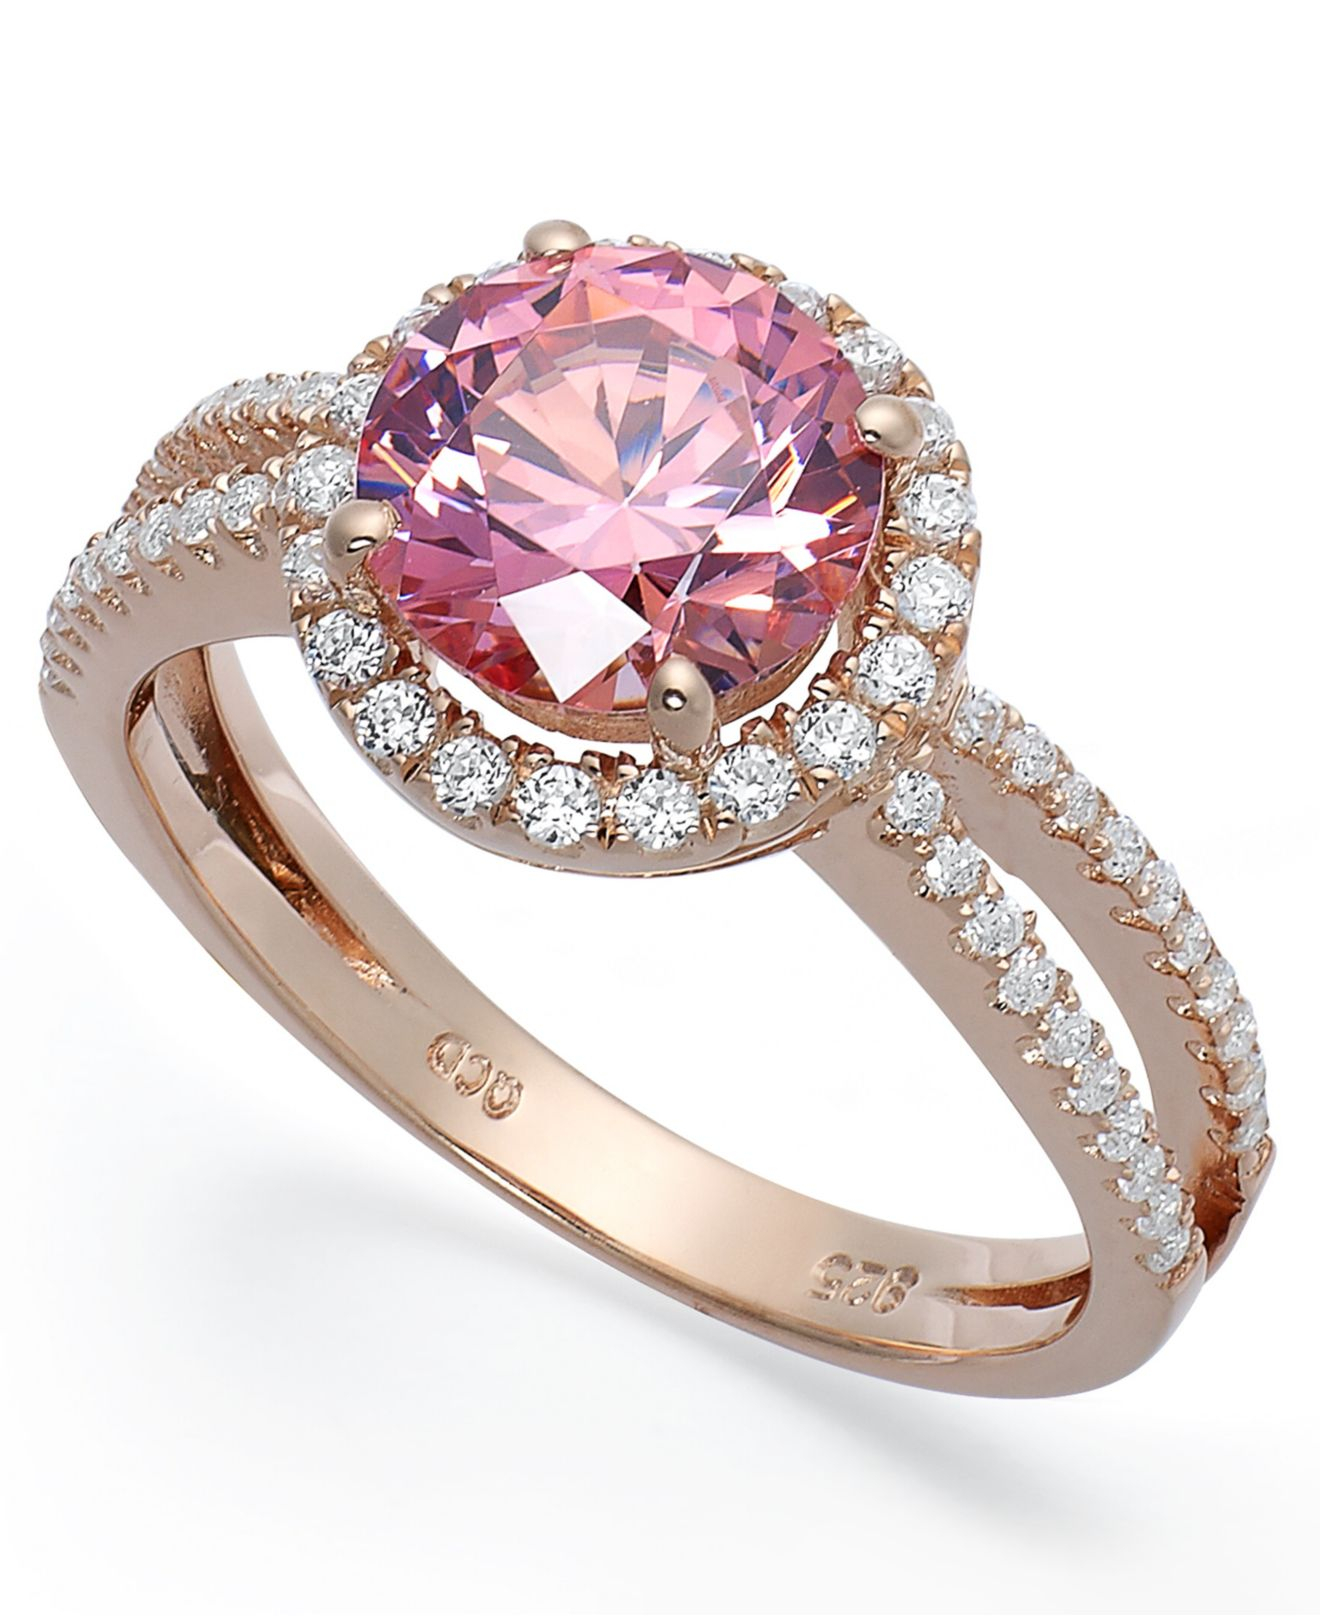 6d81c69690 Macy's 14k Rose Gold Over Sterling Silver Ring, Pink Cubic Zirconia ...